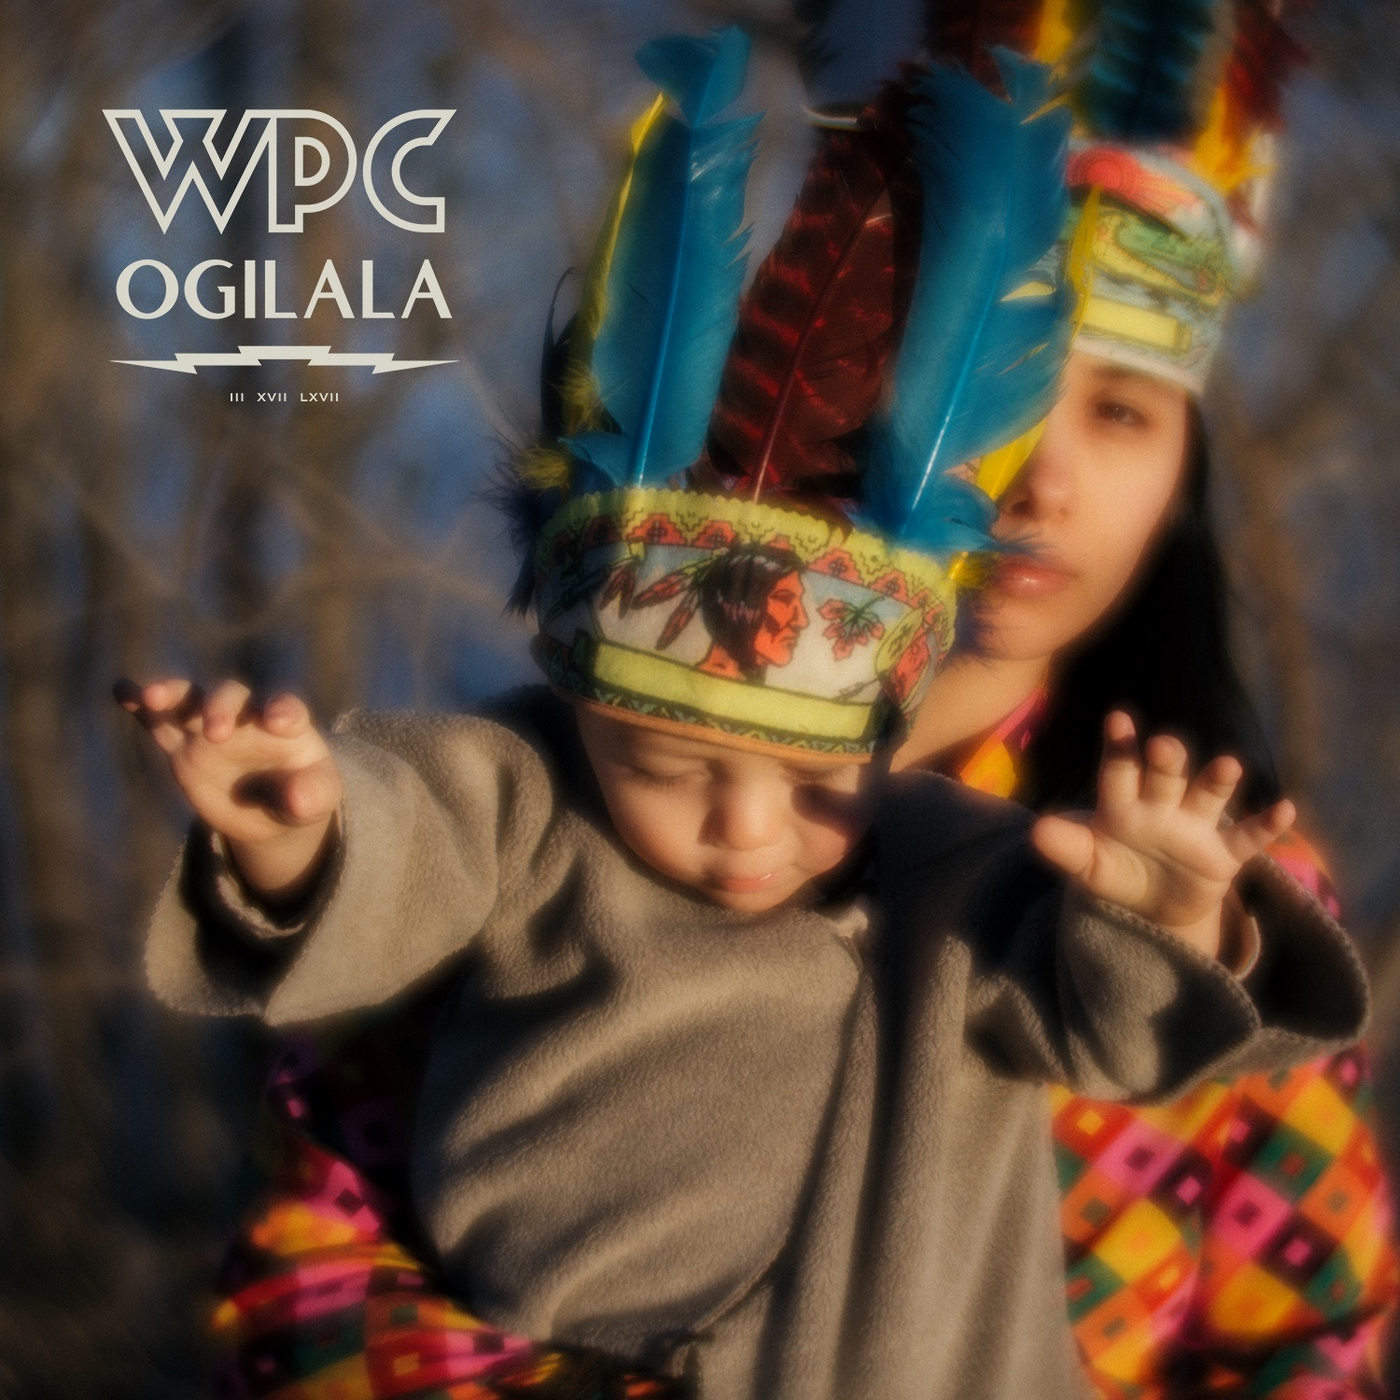 William Patrick Corgan: Ogilala (2017) Book Cover